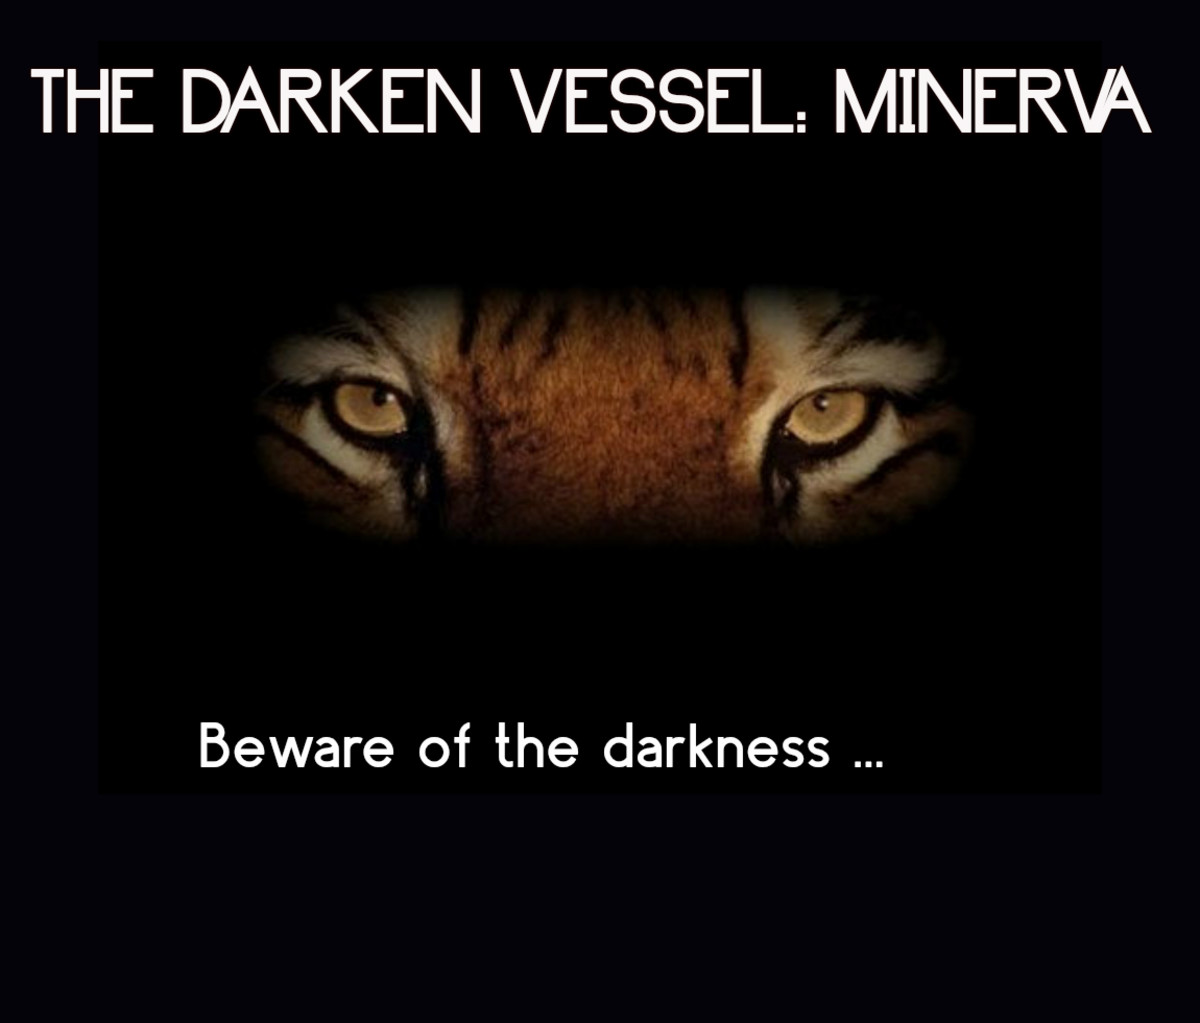 The Darken Vessel: Minerva 4